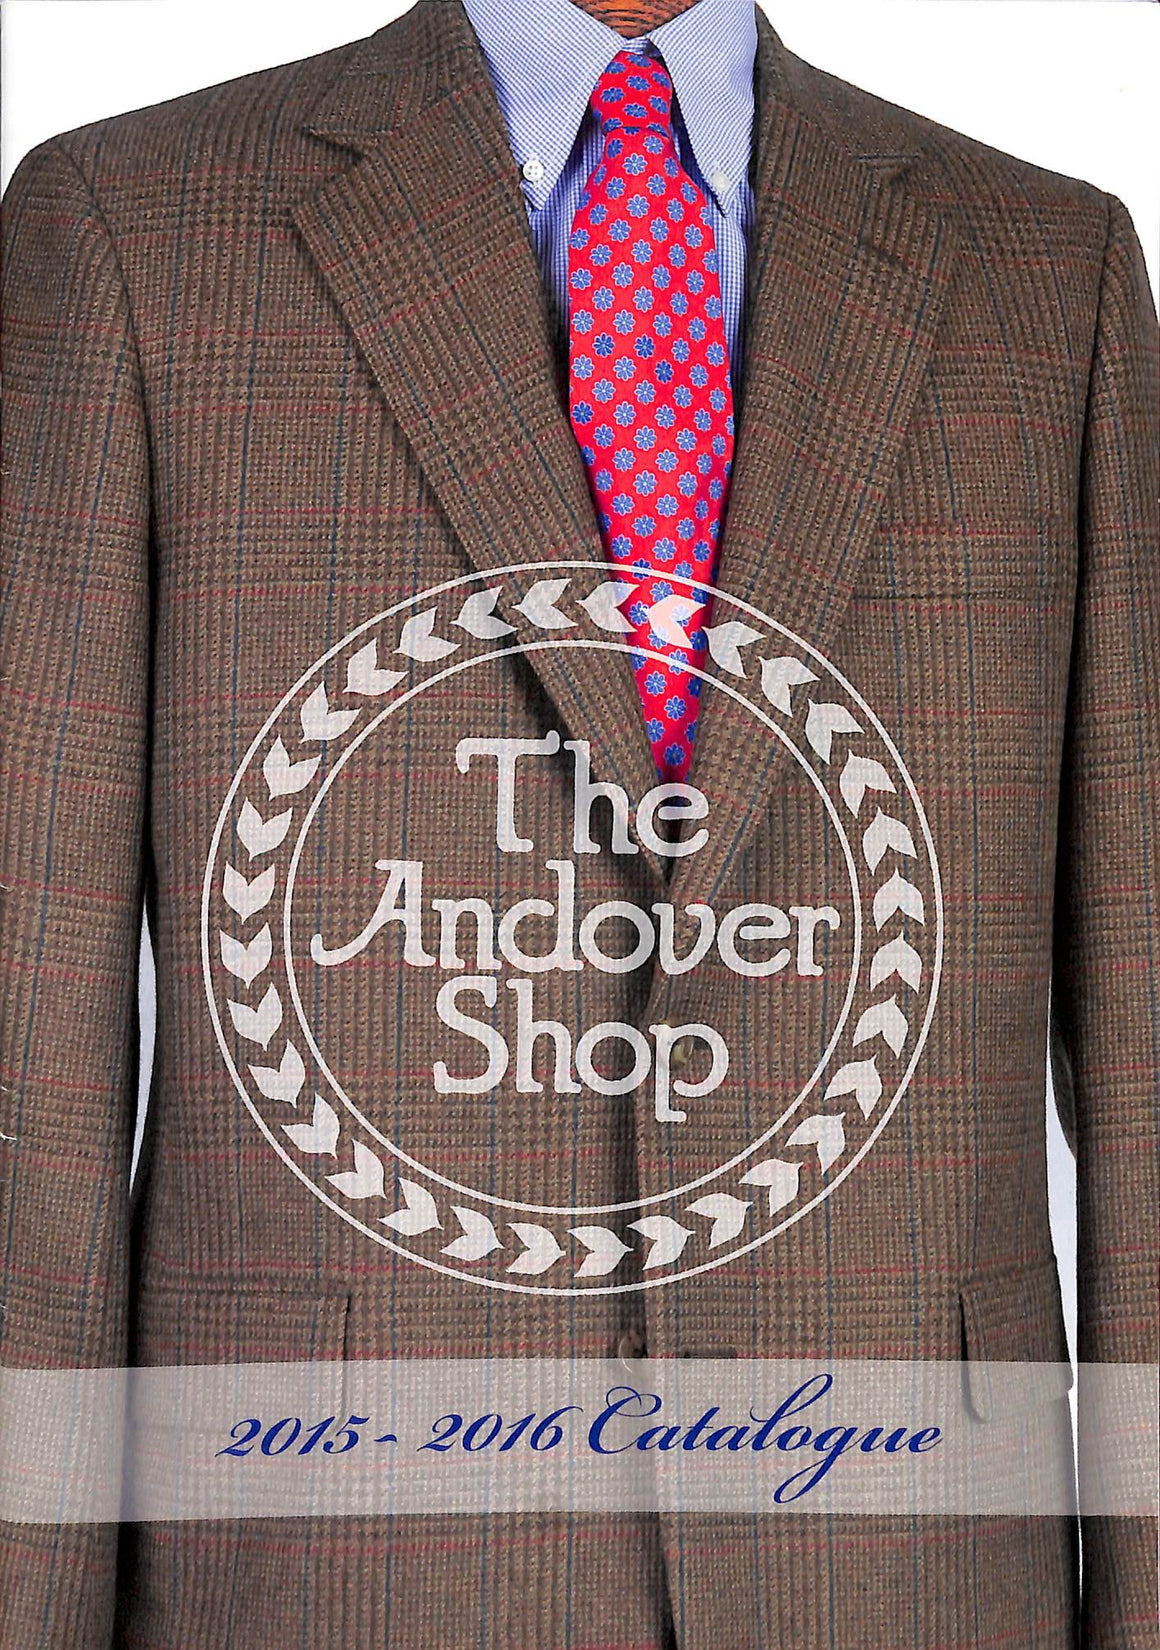 The Andover Shop: 2015-2016 Catalogue